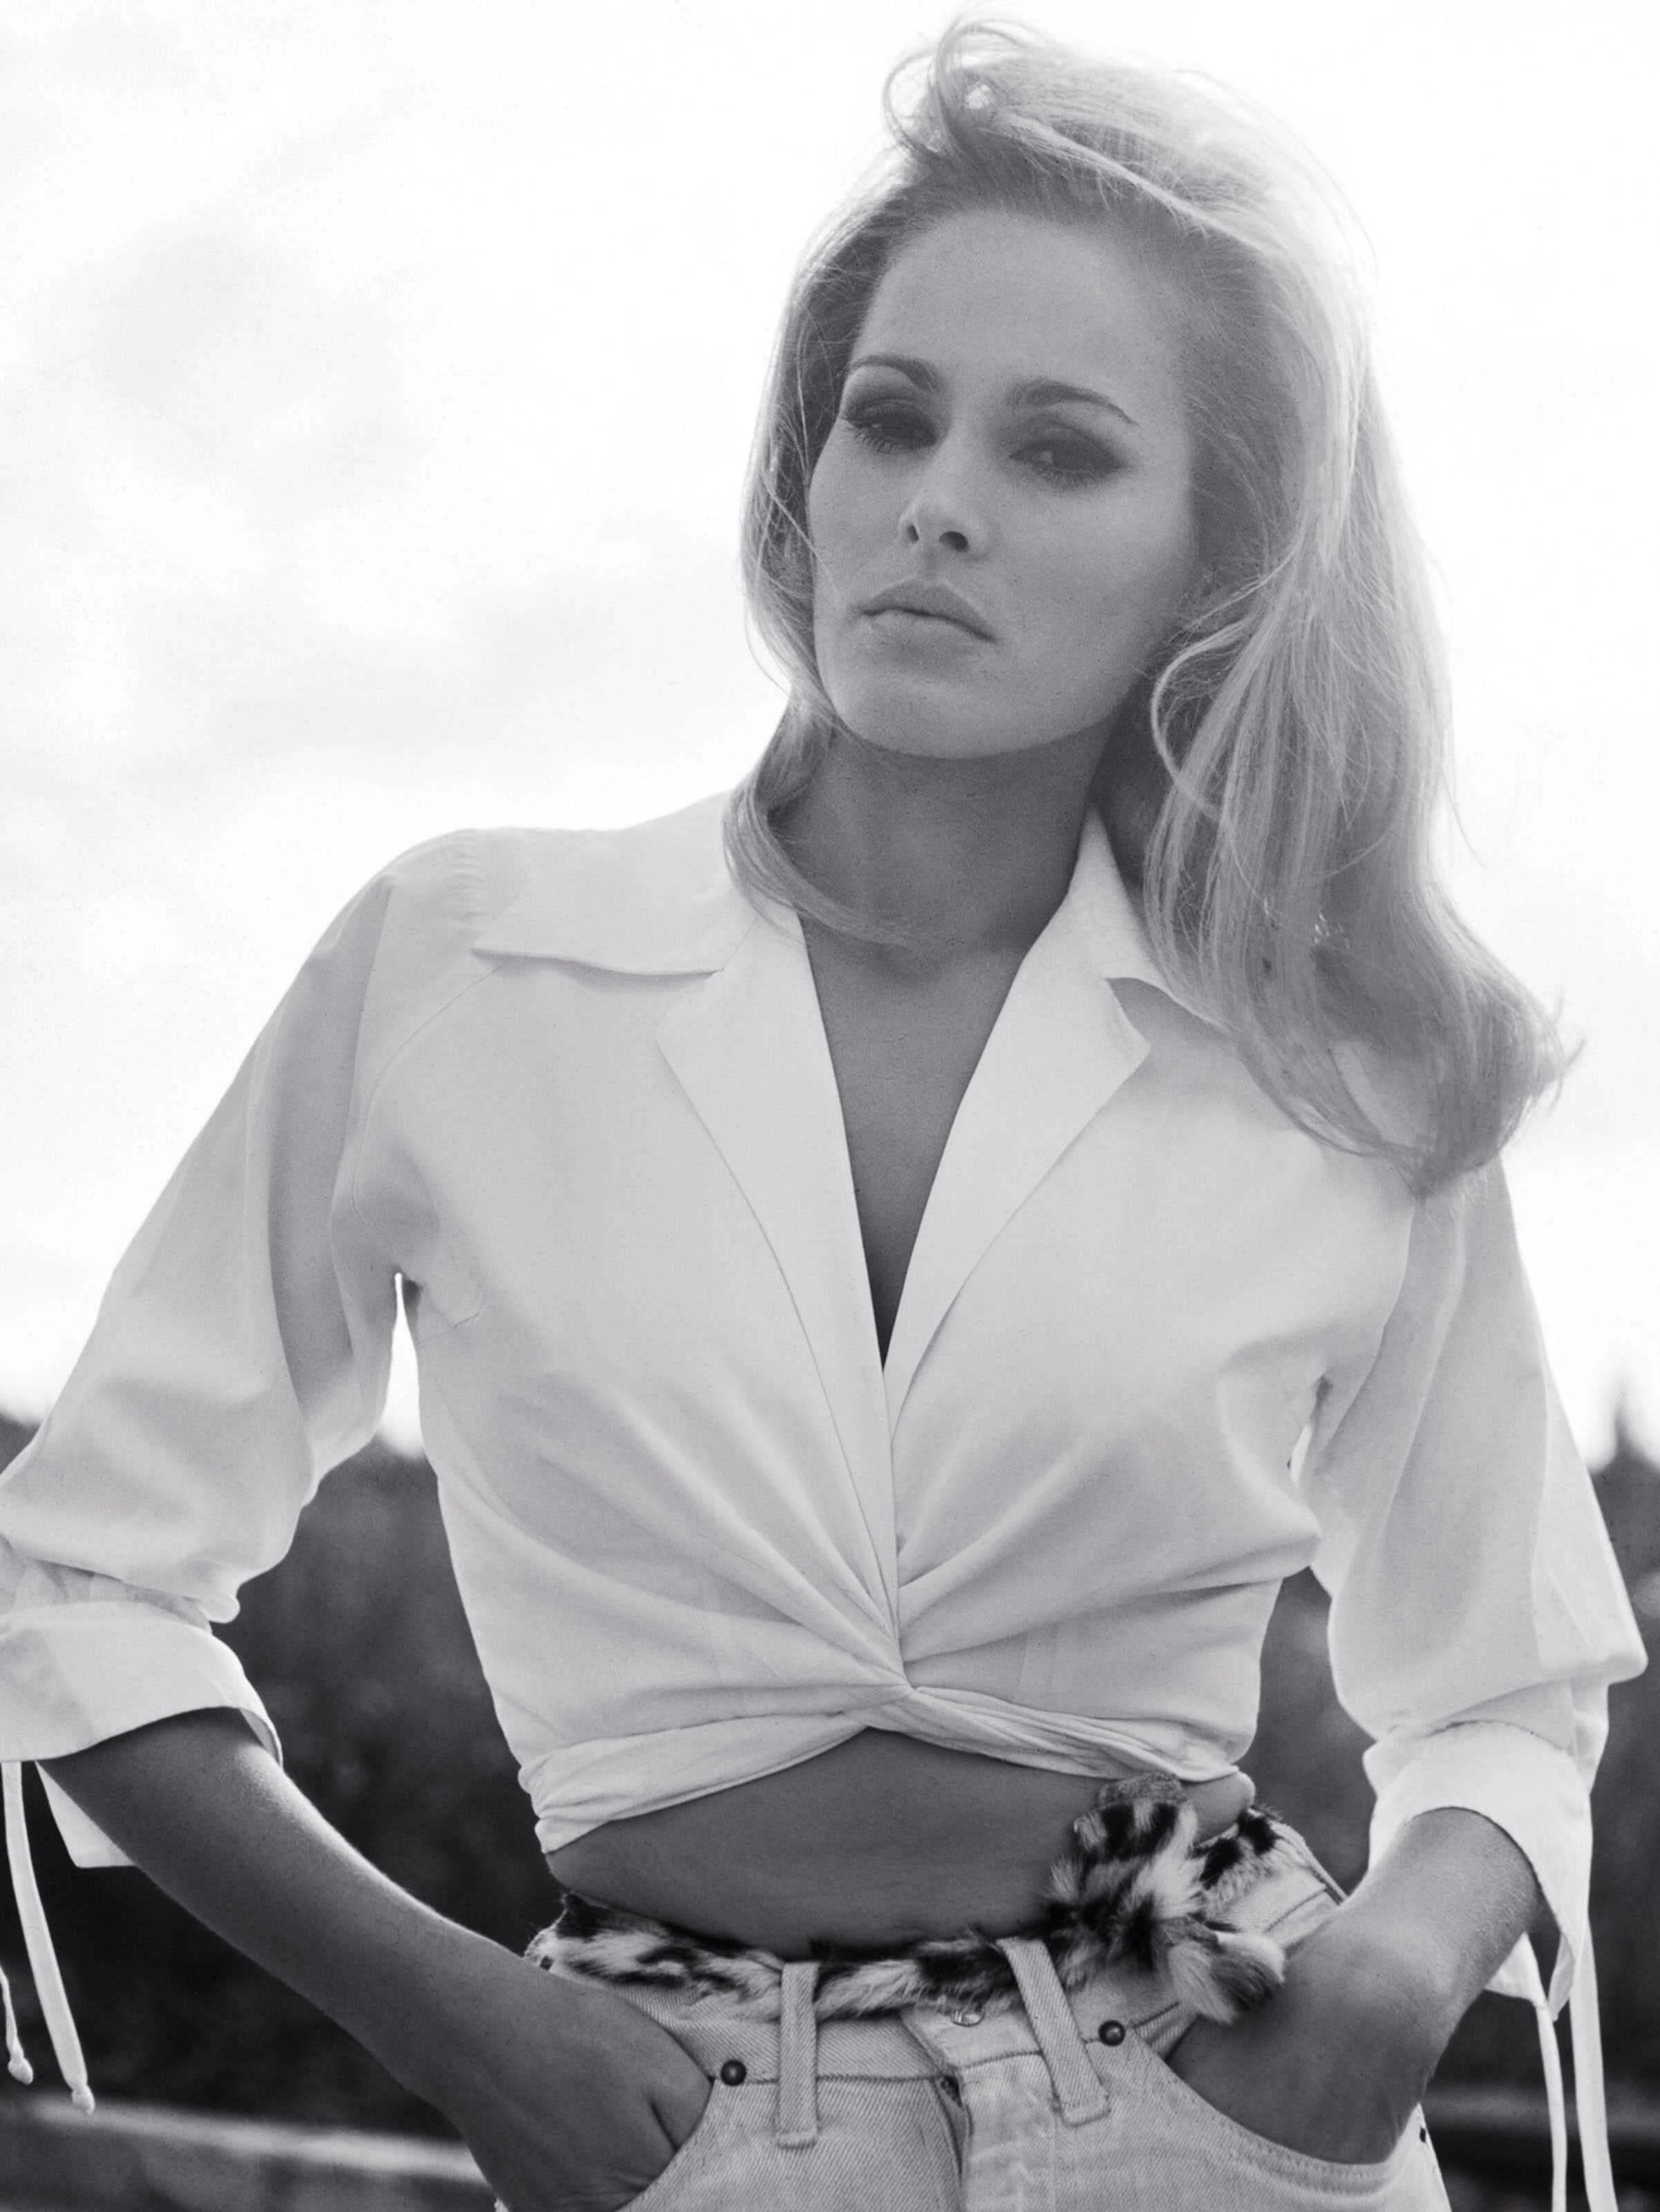 61 Hot Pictures Of Ursula Andress That Will Make You Drool | Best Of Comic Books